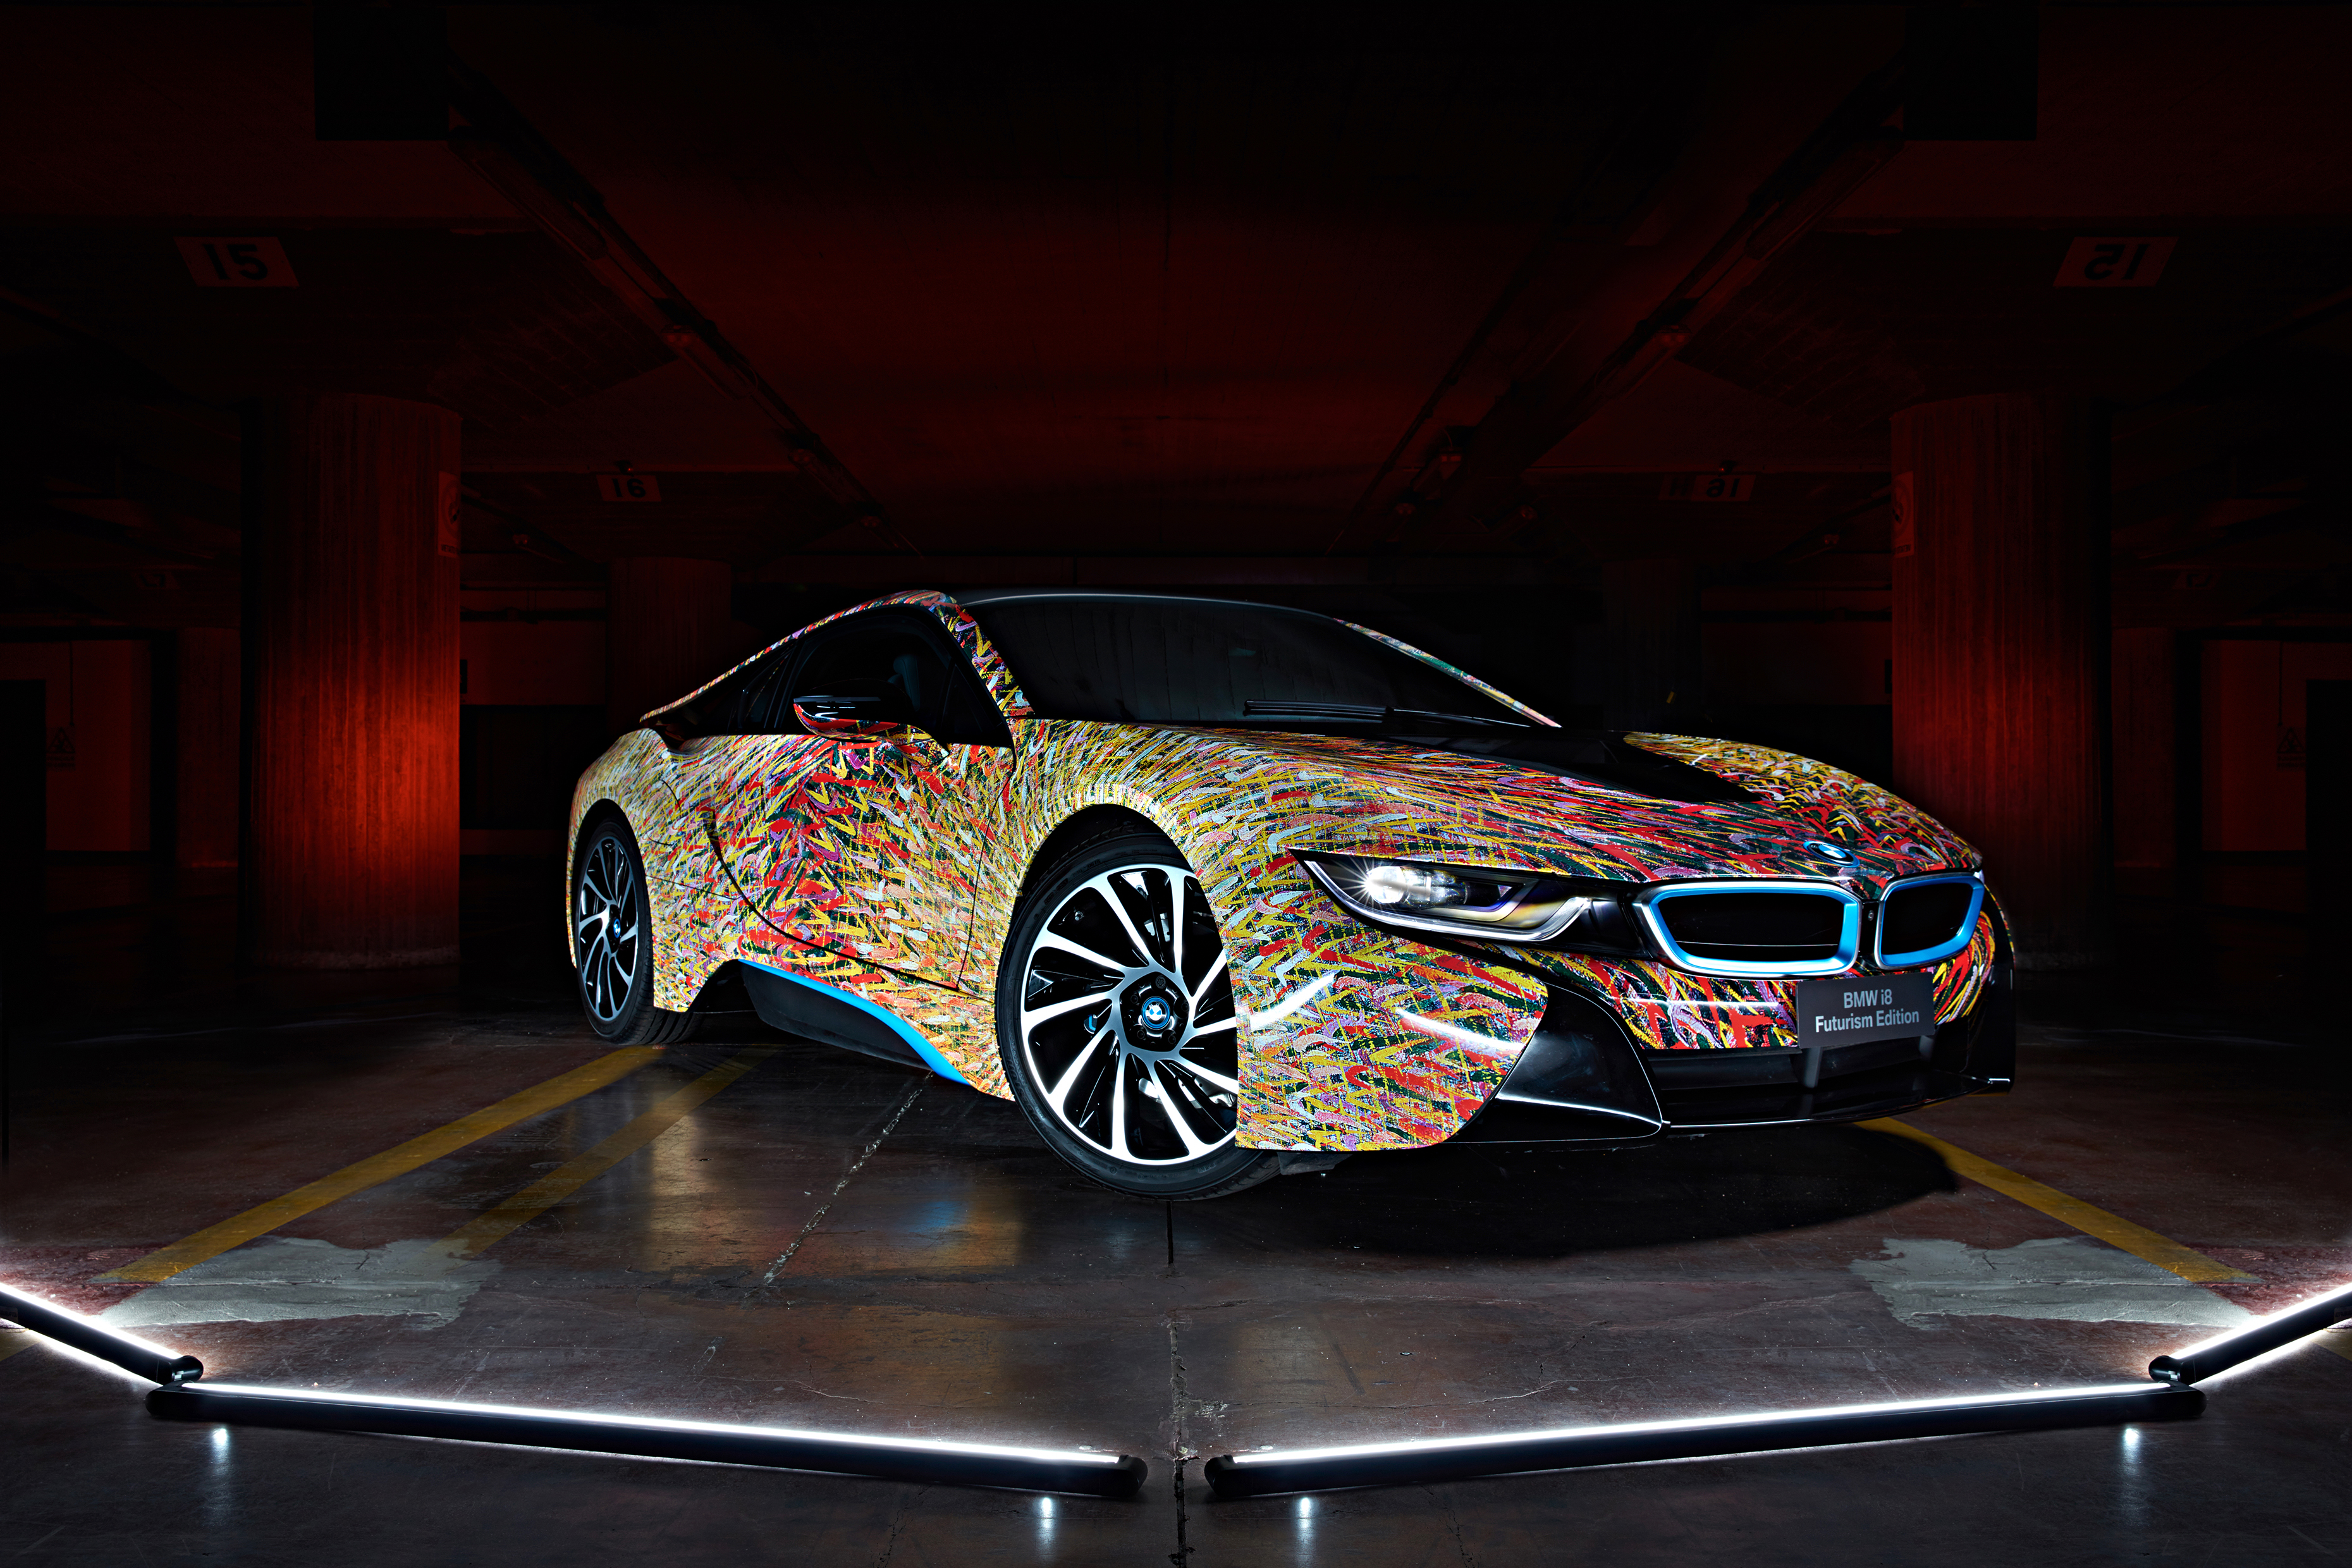 The BMW I8 Futurism Edition Is Most Incredible Looking Yet